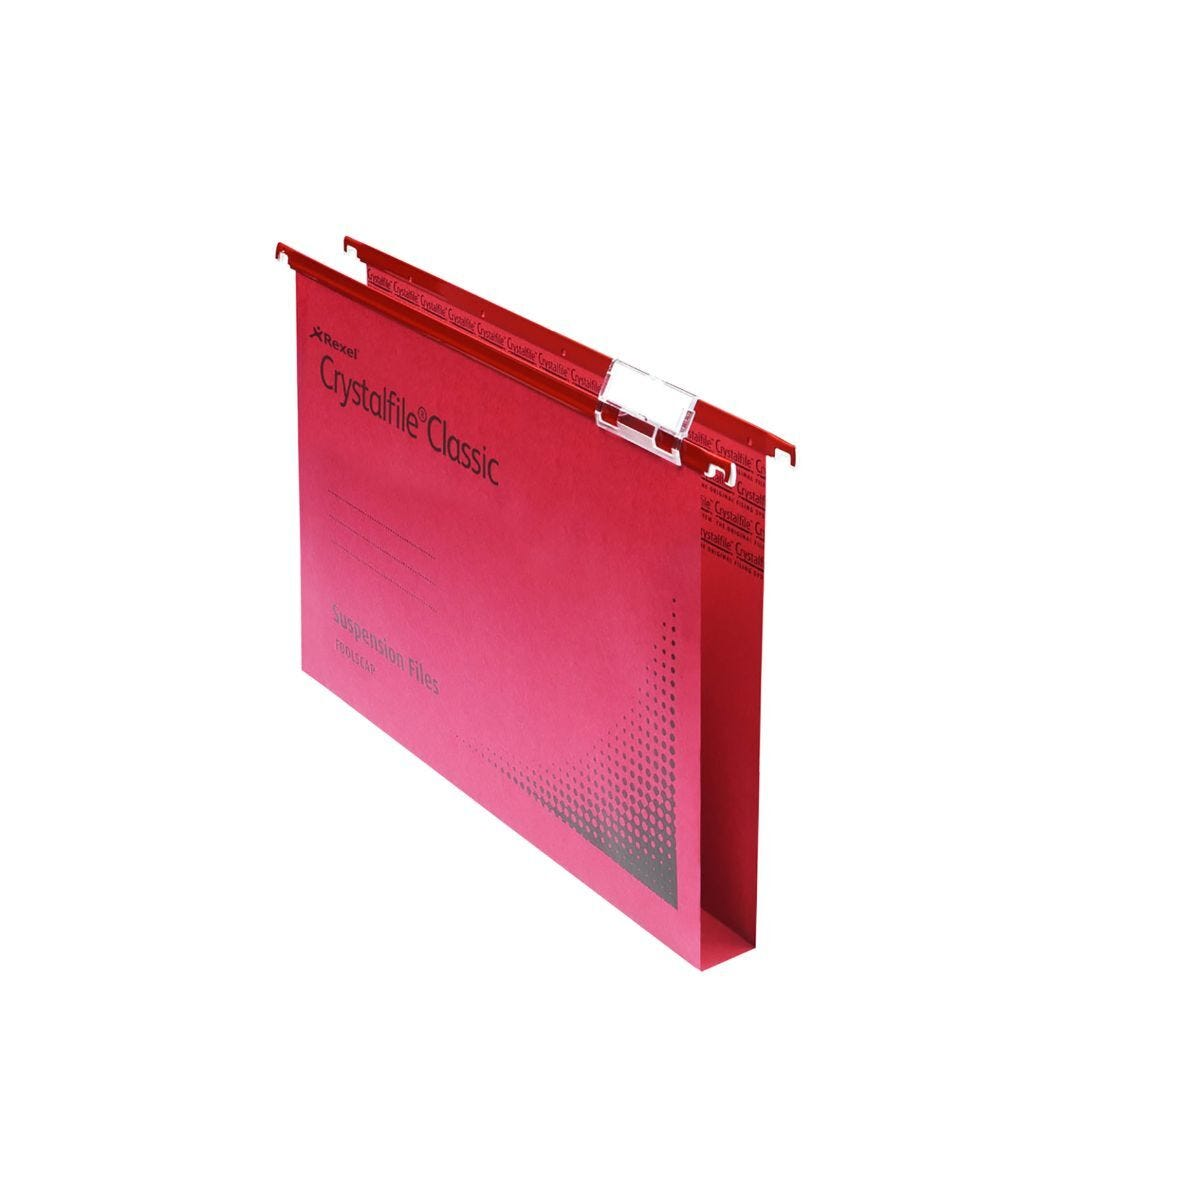 Rexel Crystalfile Classic Foolscap Suspension File 30mm Pack of 50 Red